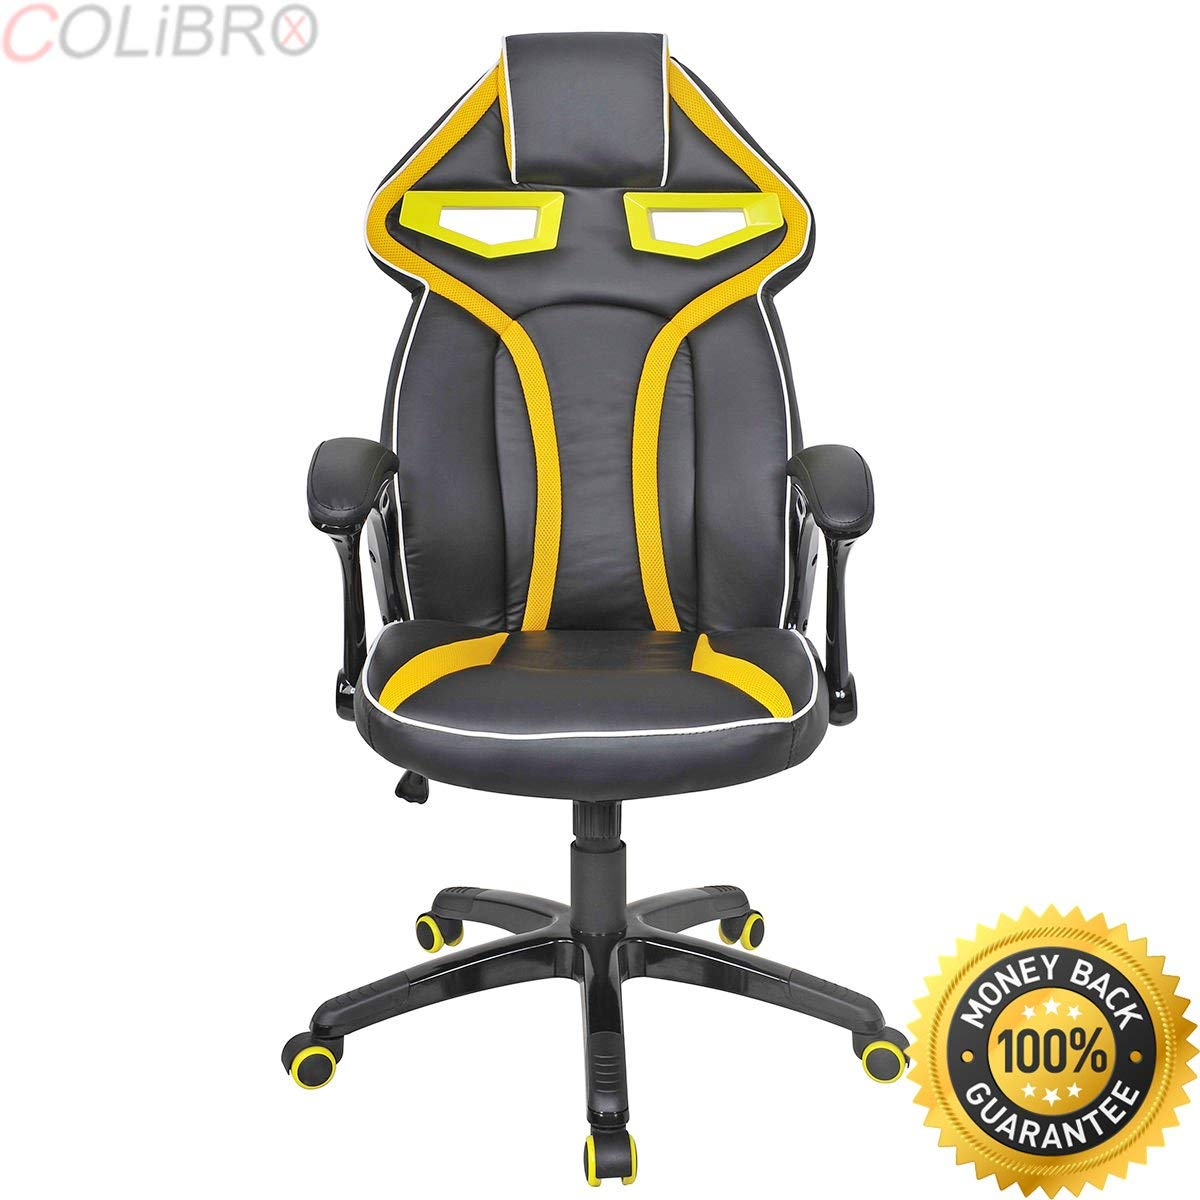 COLIBROX--Racing Bucket Seat Office Chair High Back Gaming Chair Desk Task Ergonomic New. racing bucket seat office chair high back gaming chair desk task ergonomic. amazon bucket seat gaming chair.